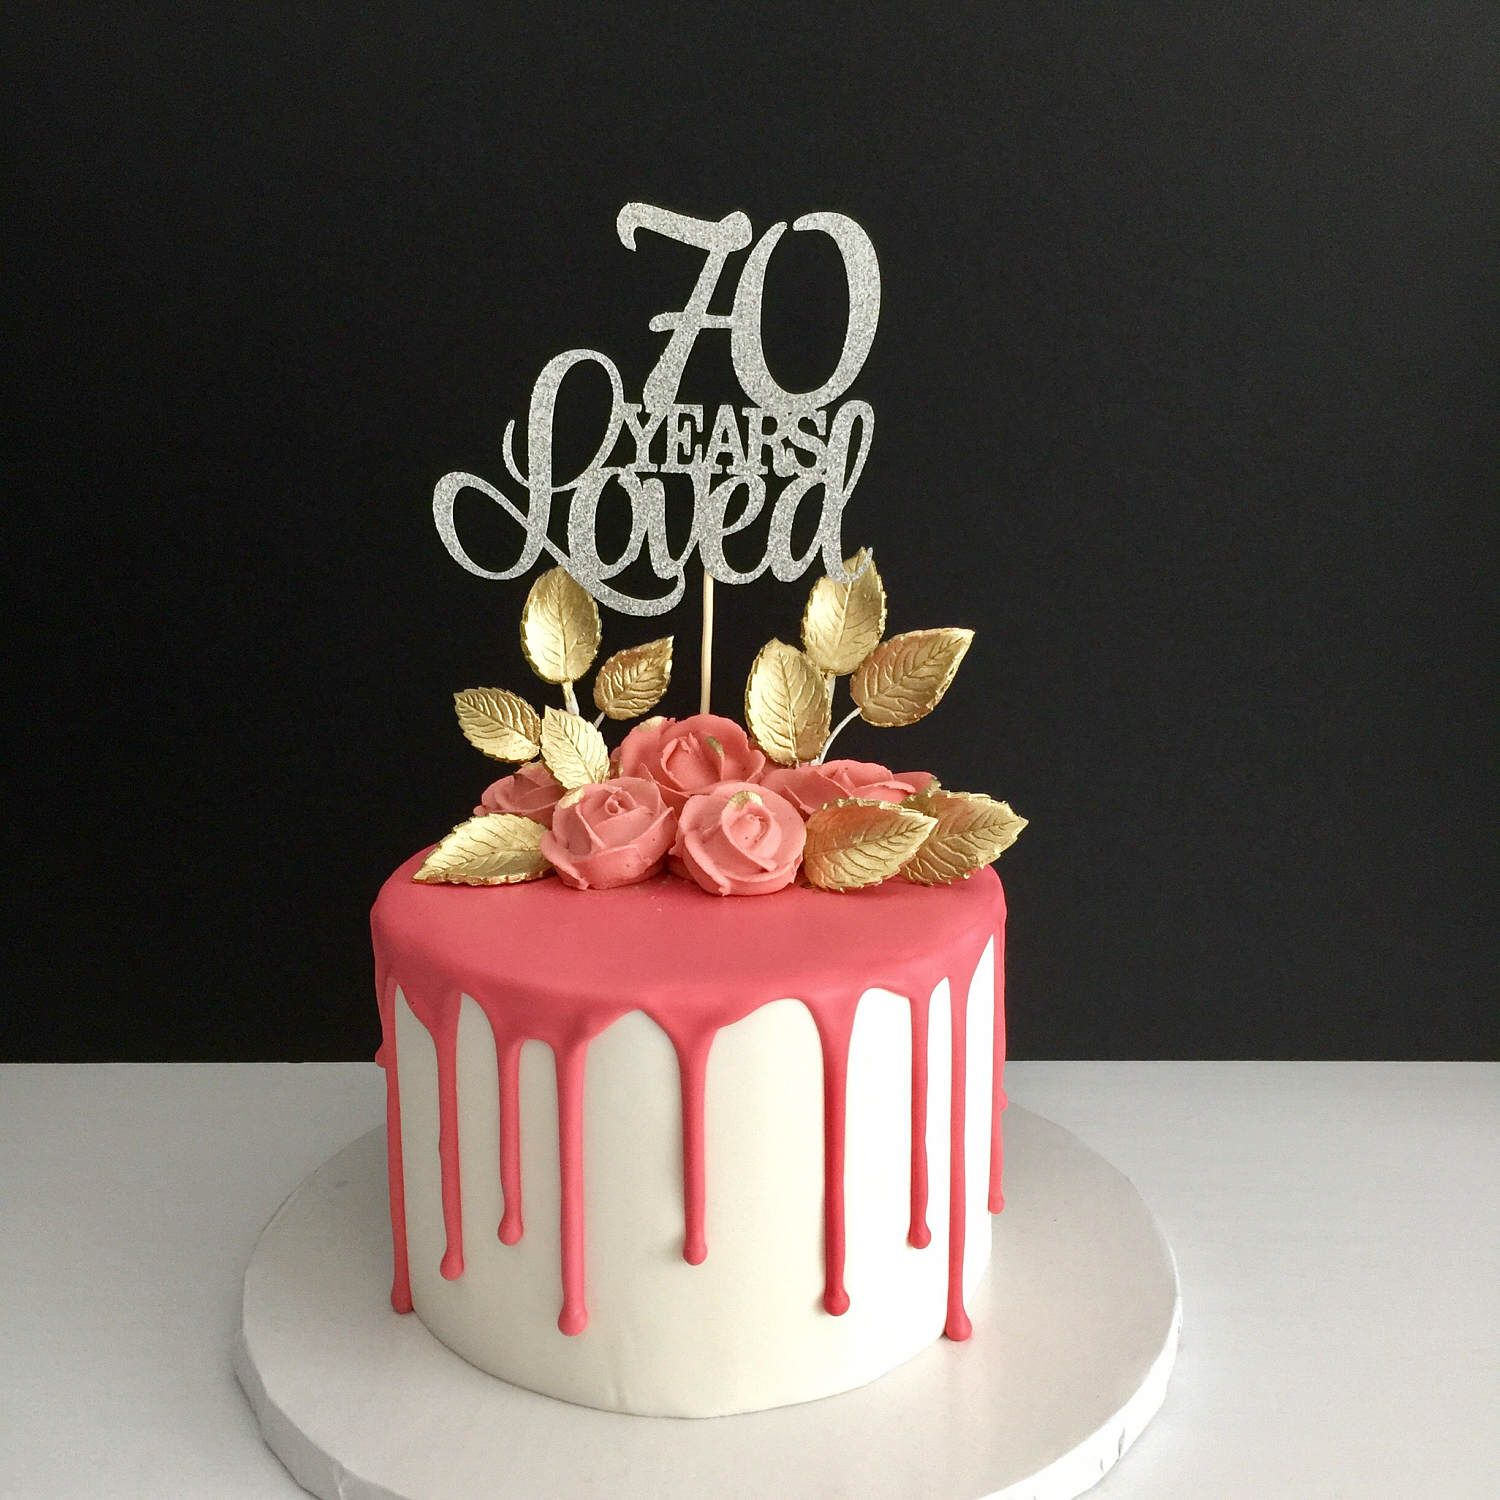 70 Years Loved Cake Topper 70th Birthday Happy Anniversary